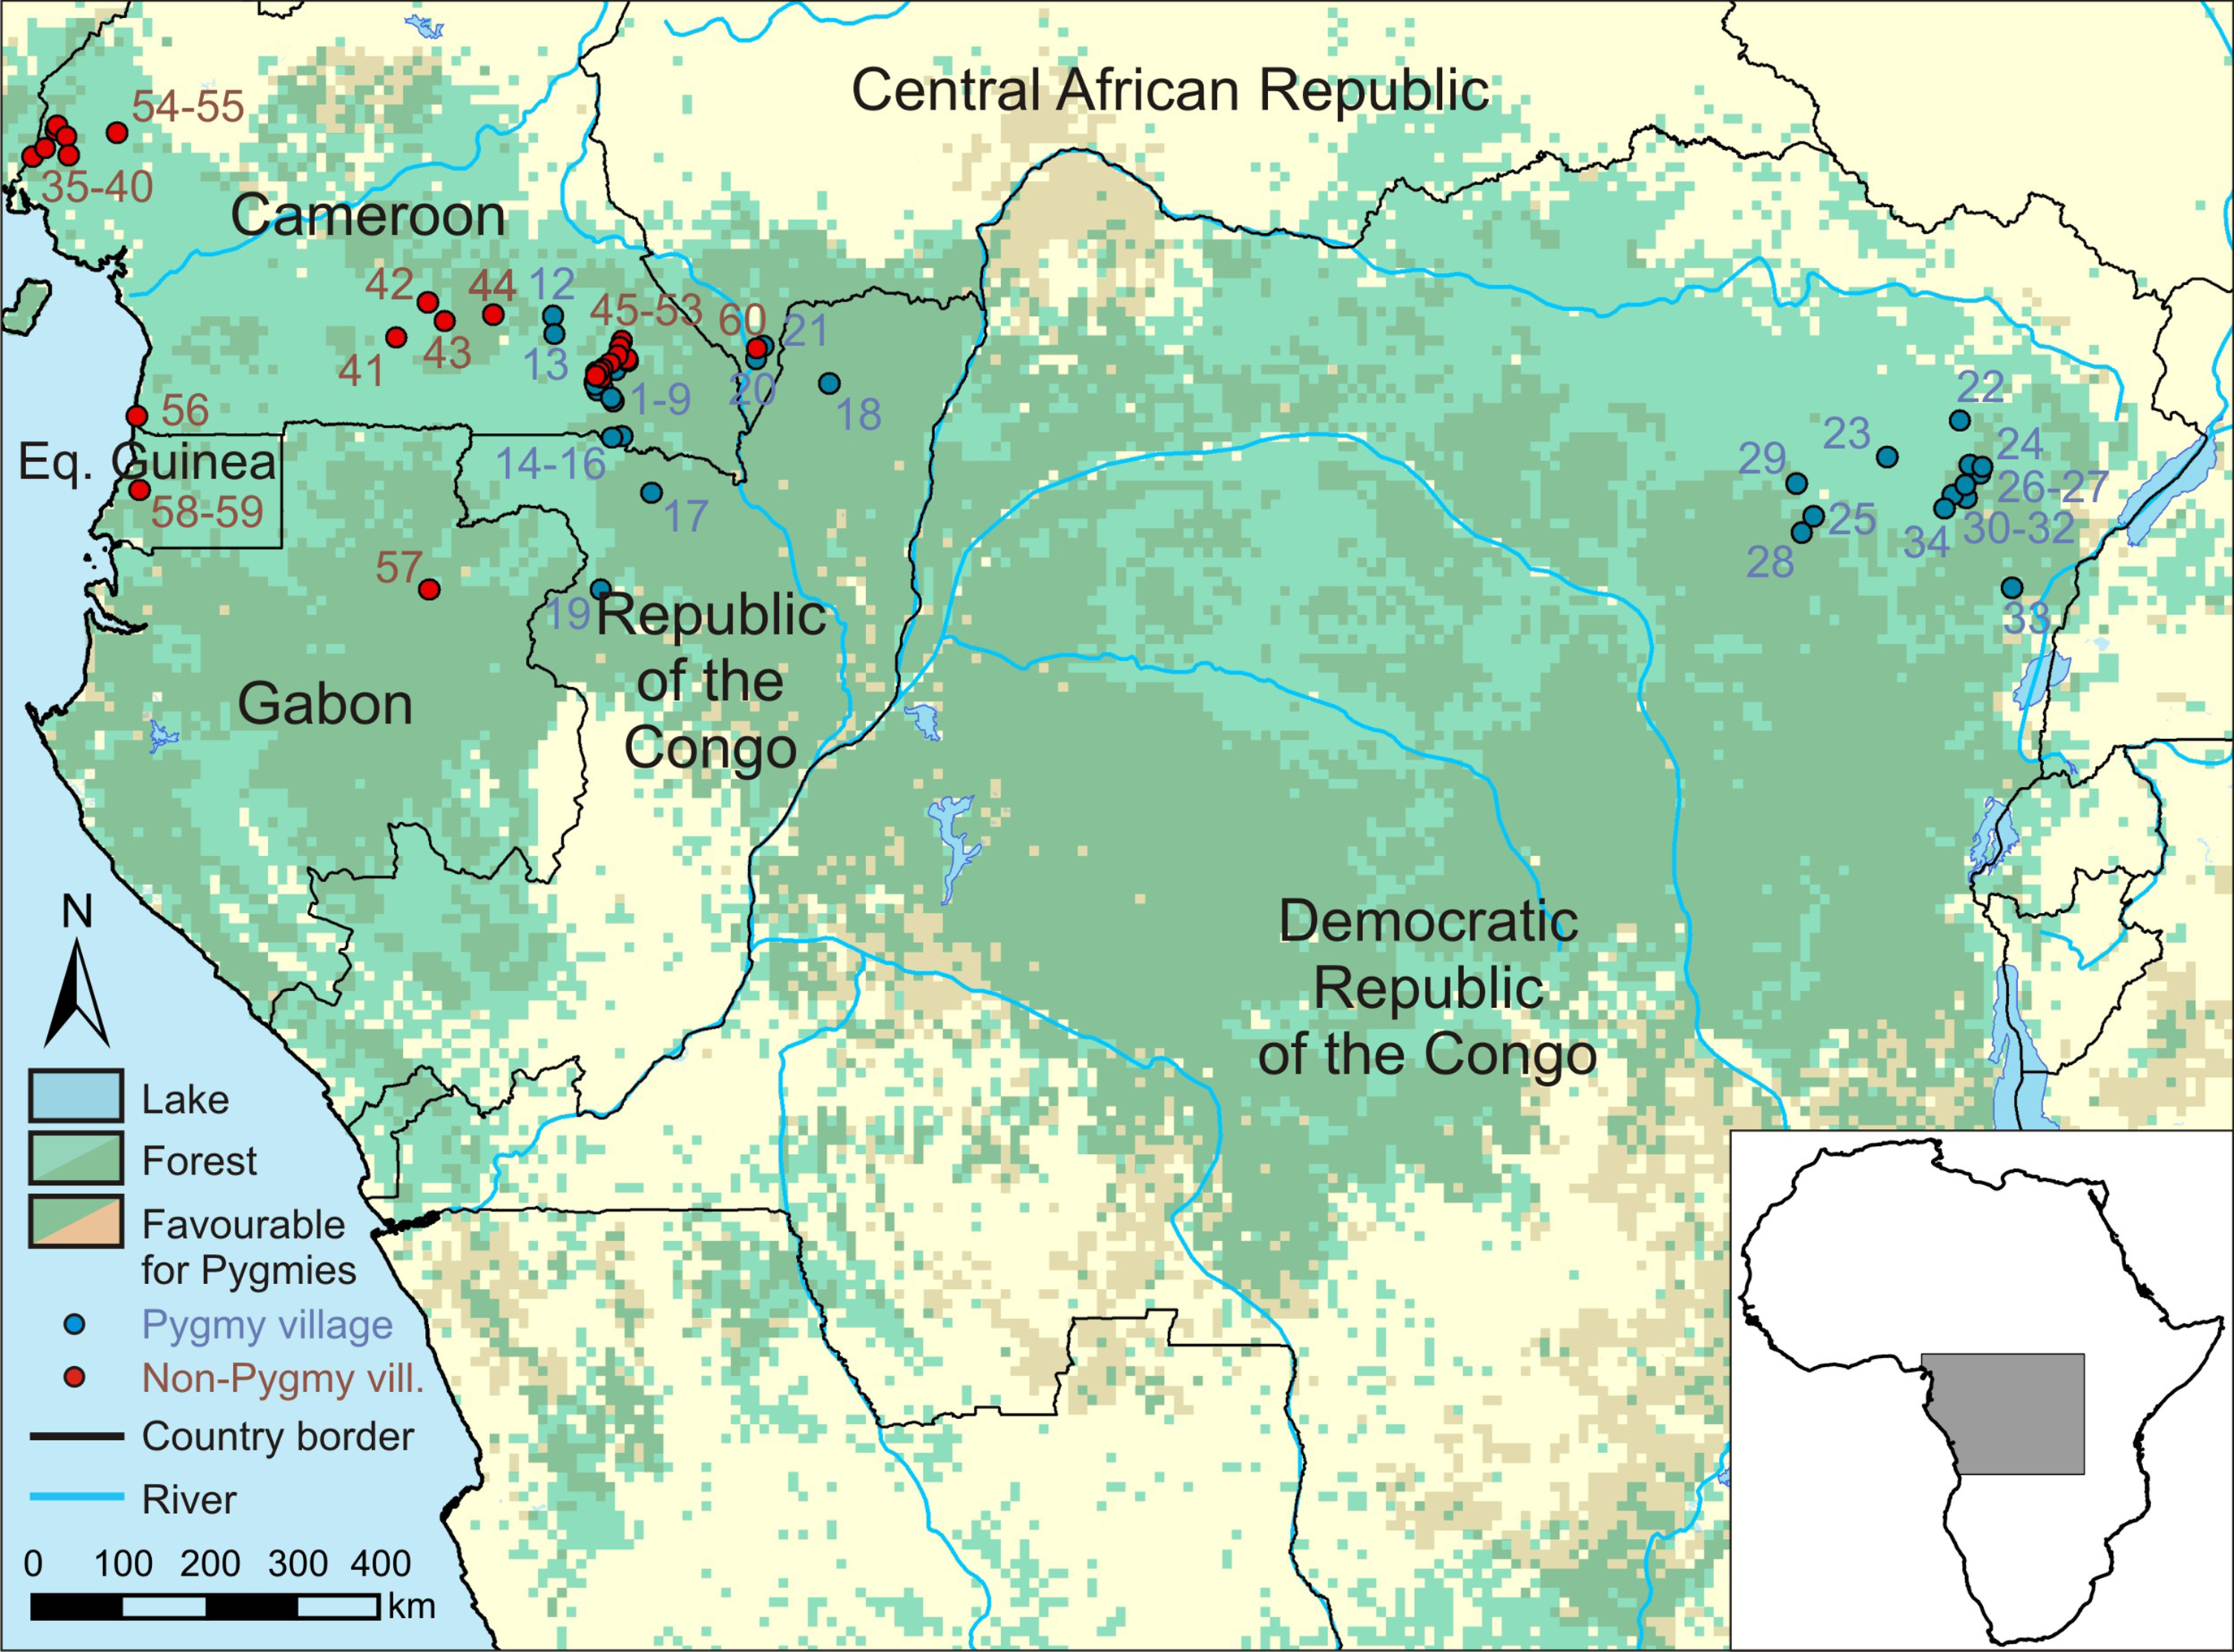 Congo Basin On Map Of Africa.Differences Between Pygmy And Non Pygmy Hunting In Congo Basin